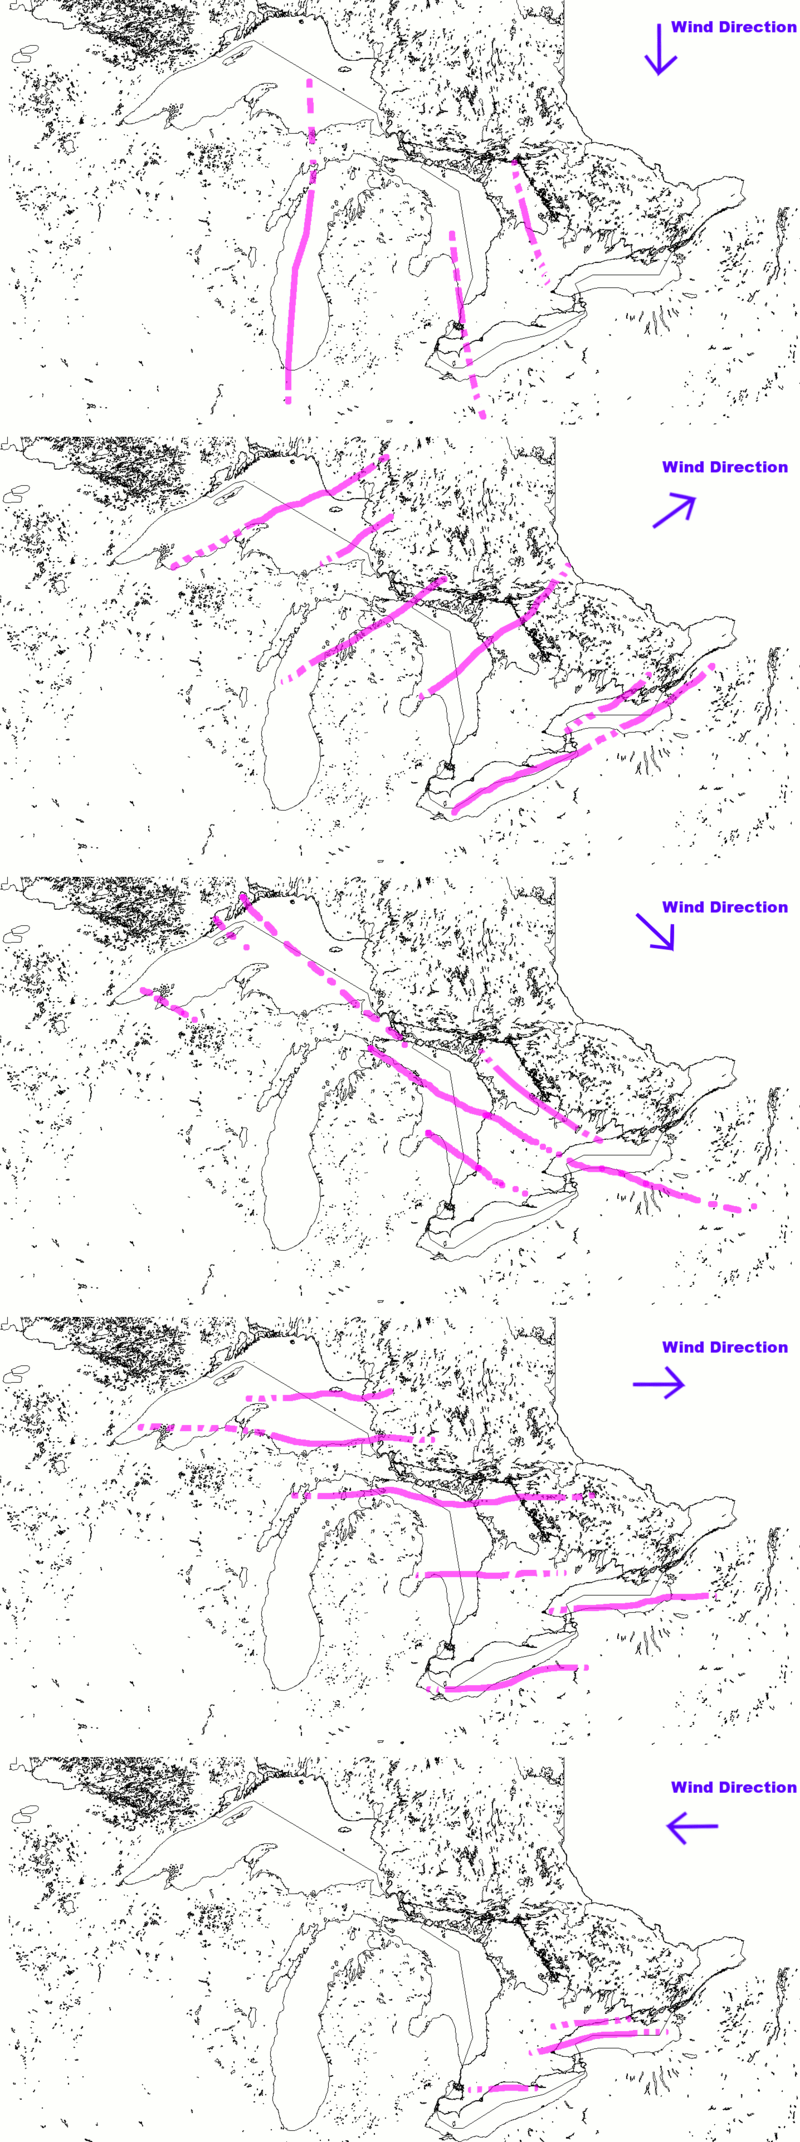 Lake effect snow wind direction bands1.png